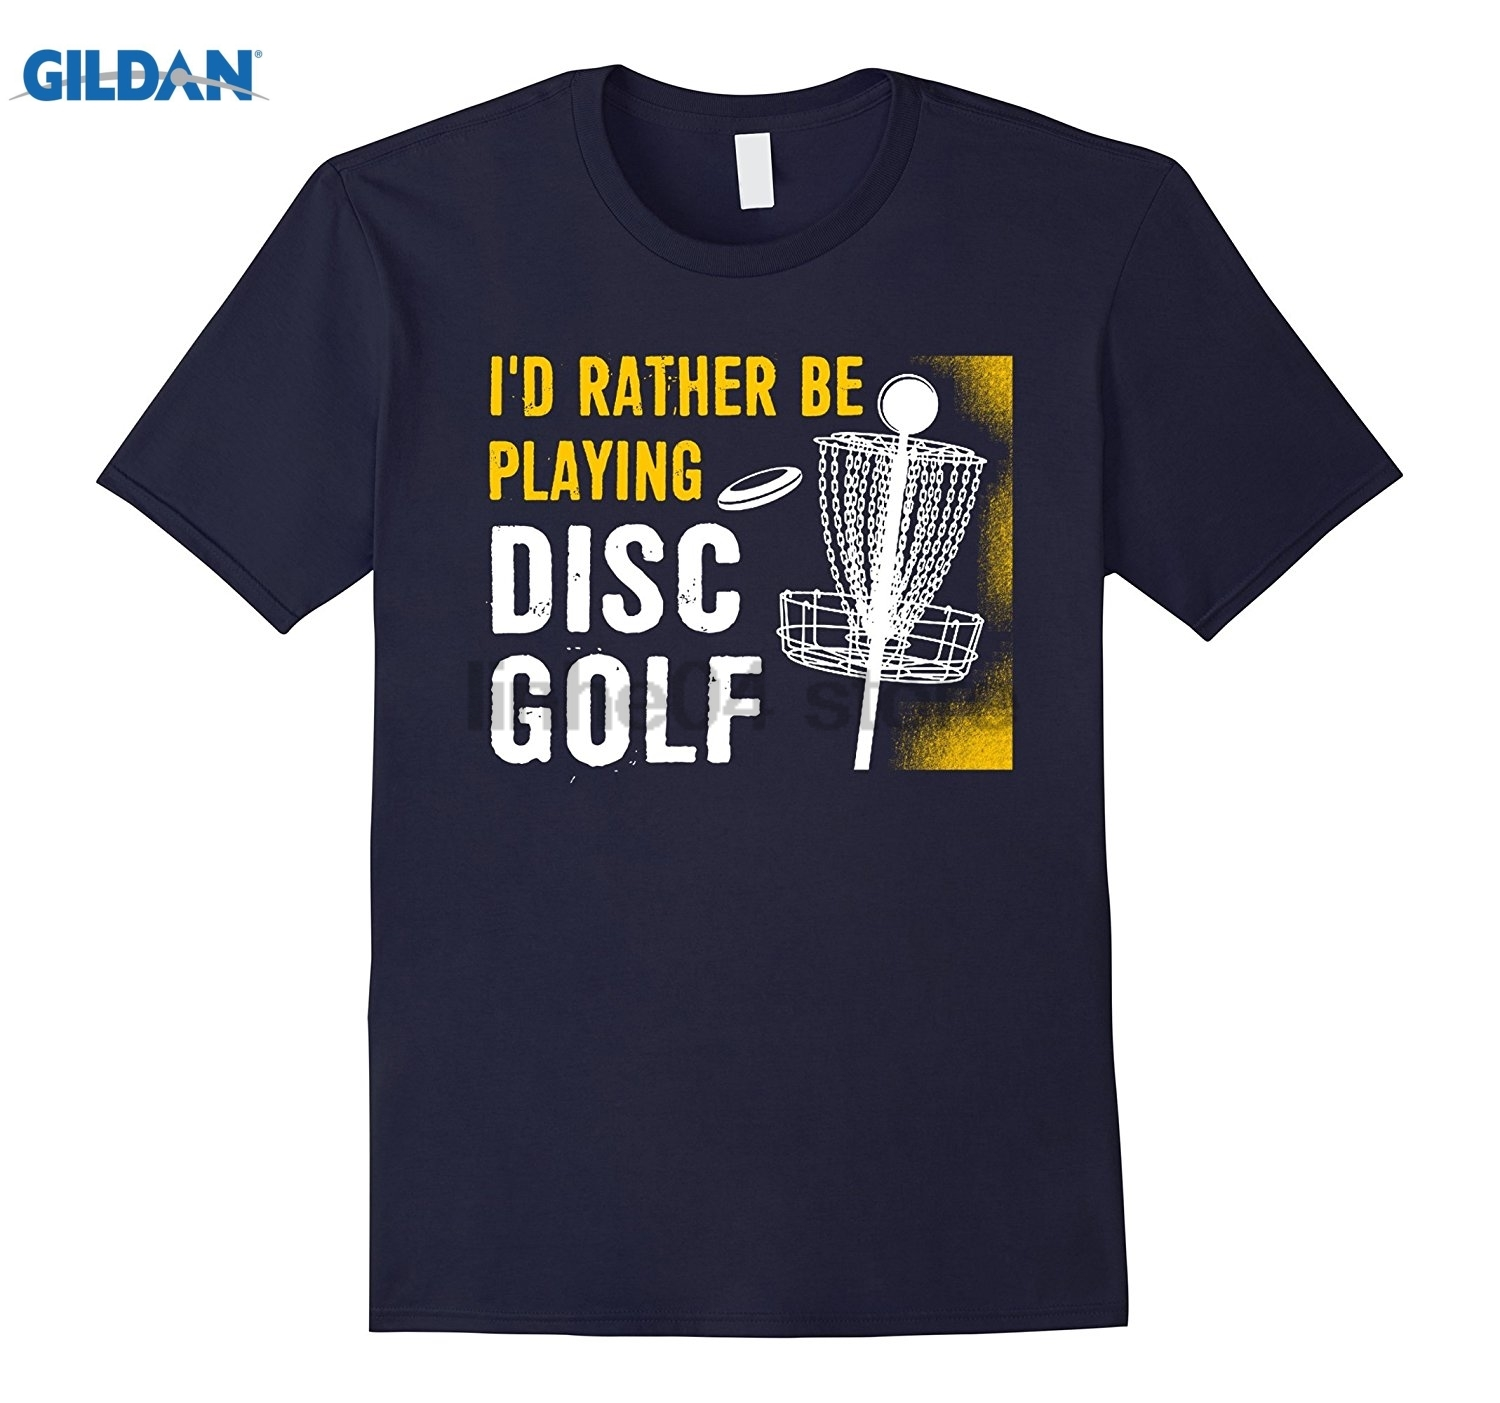 GILDAN Id Rather Be Playing Disc T-Shirt - Disc Golfing Tee